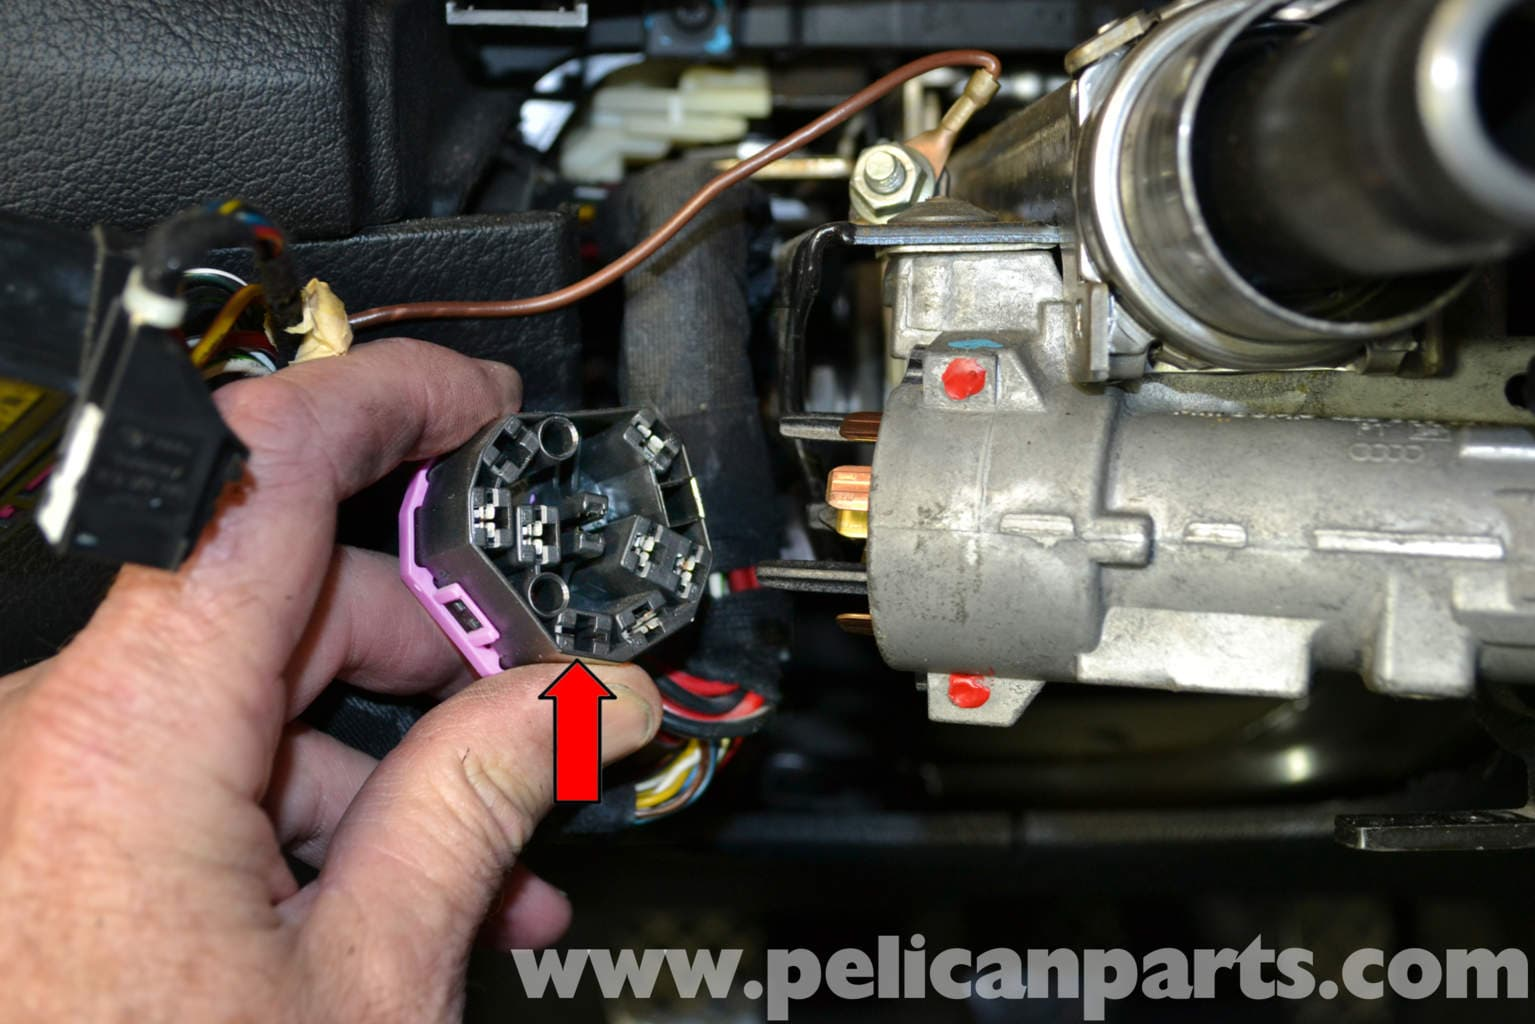 audi a4 b6 ignition switch and lock cylinder replacement. Black Bedroom Furniture Sets. Home Design Ideas